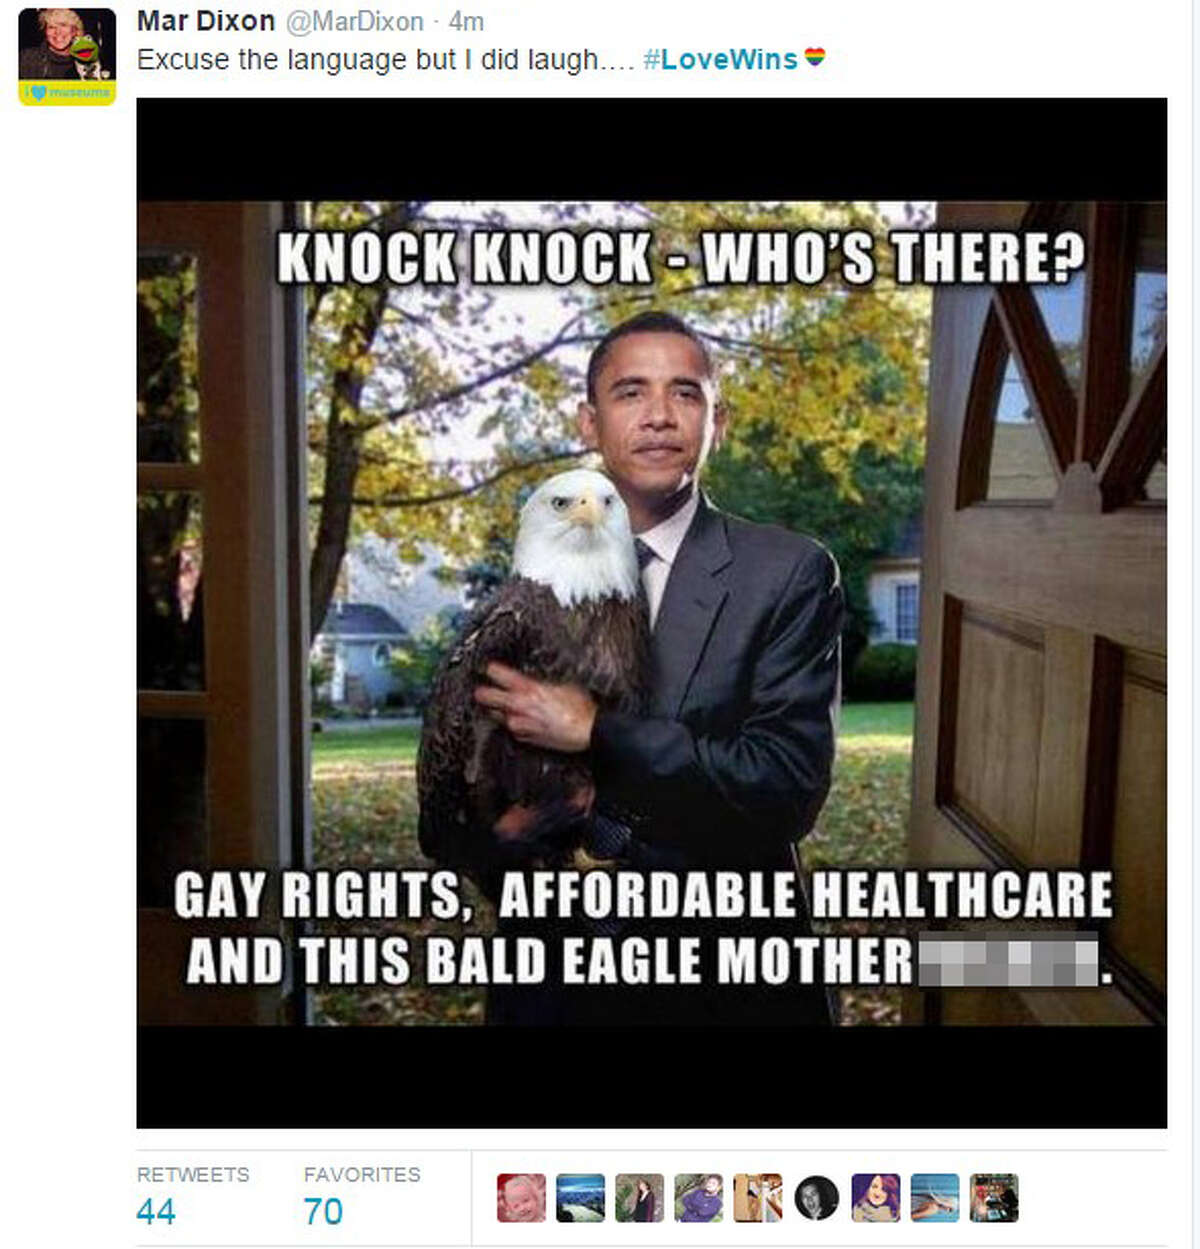 Meme reactions to the historic SCOTUS same-sex marriage ruling.